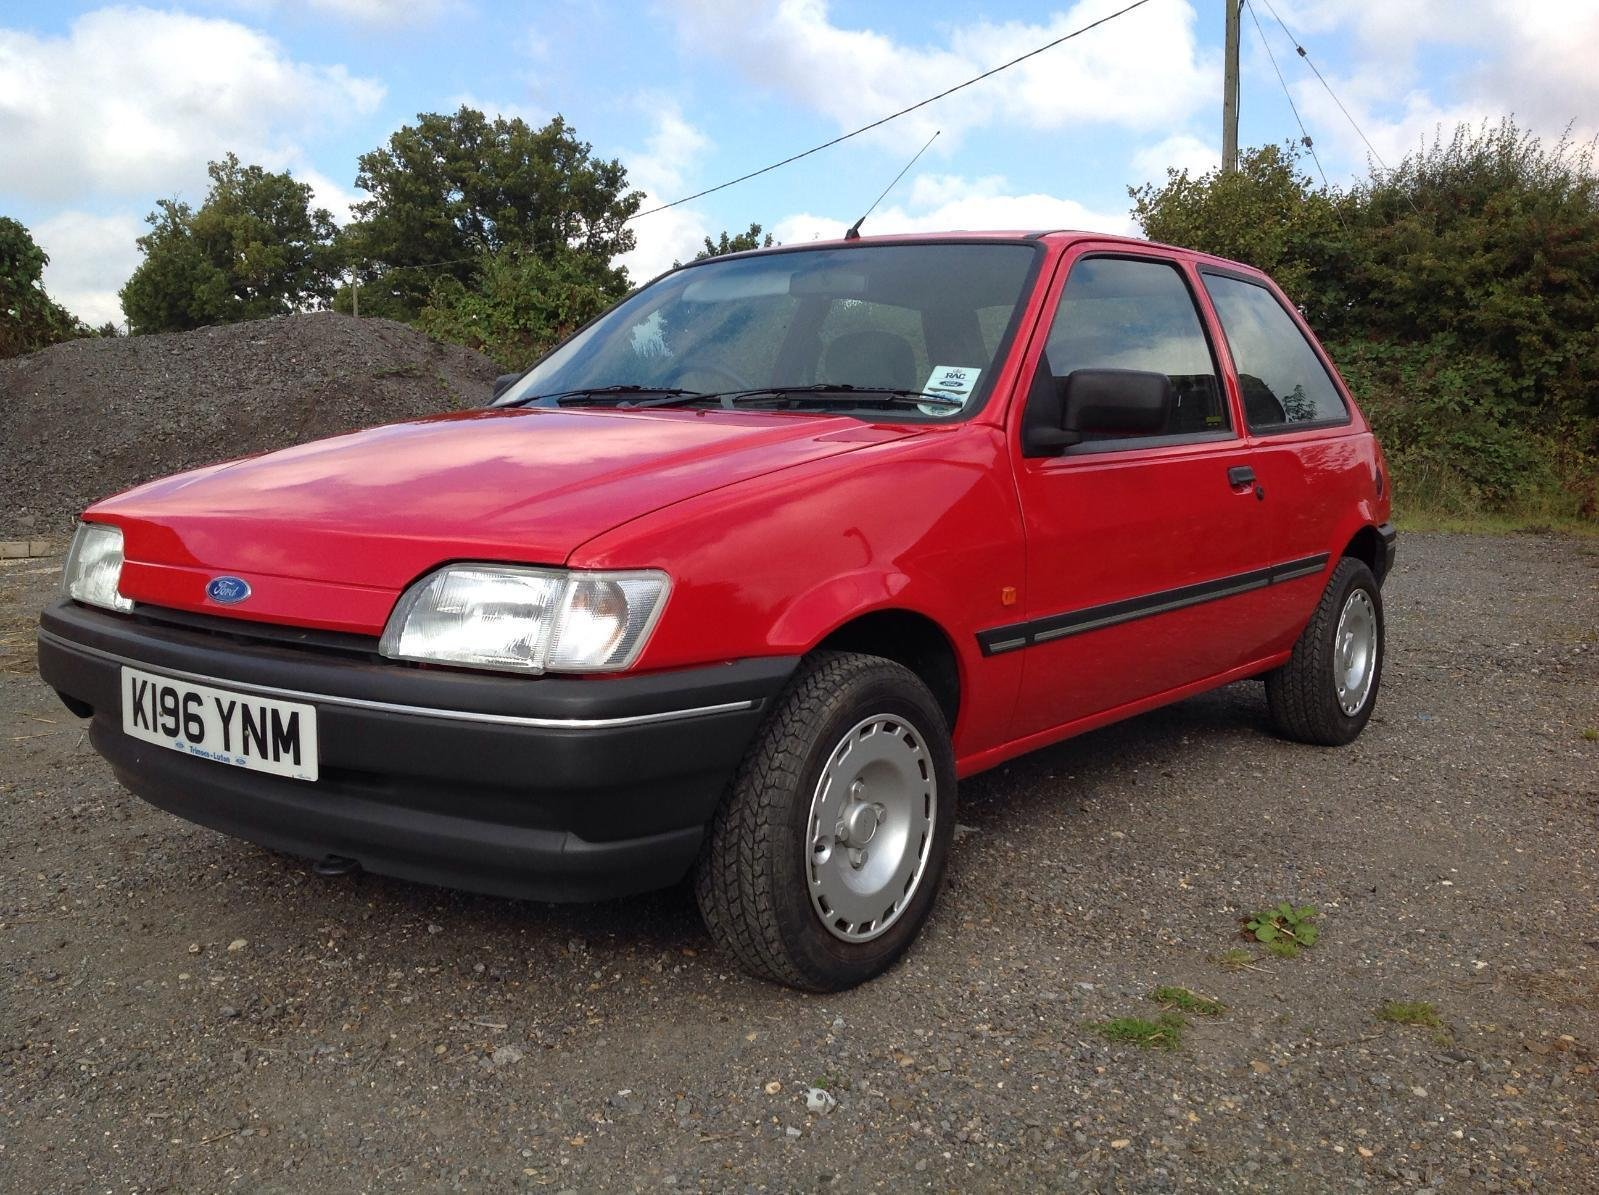 1993 Ford Fiesta 1.1LX For Sale (picture 1 of 6)